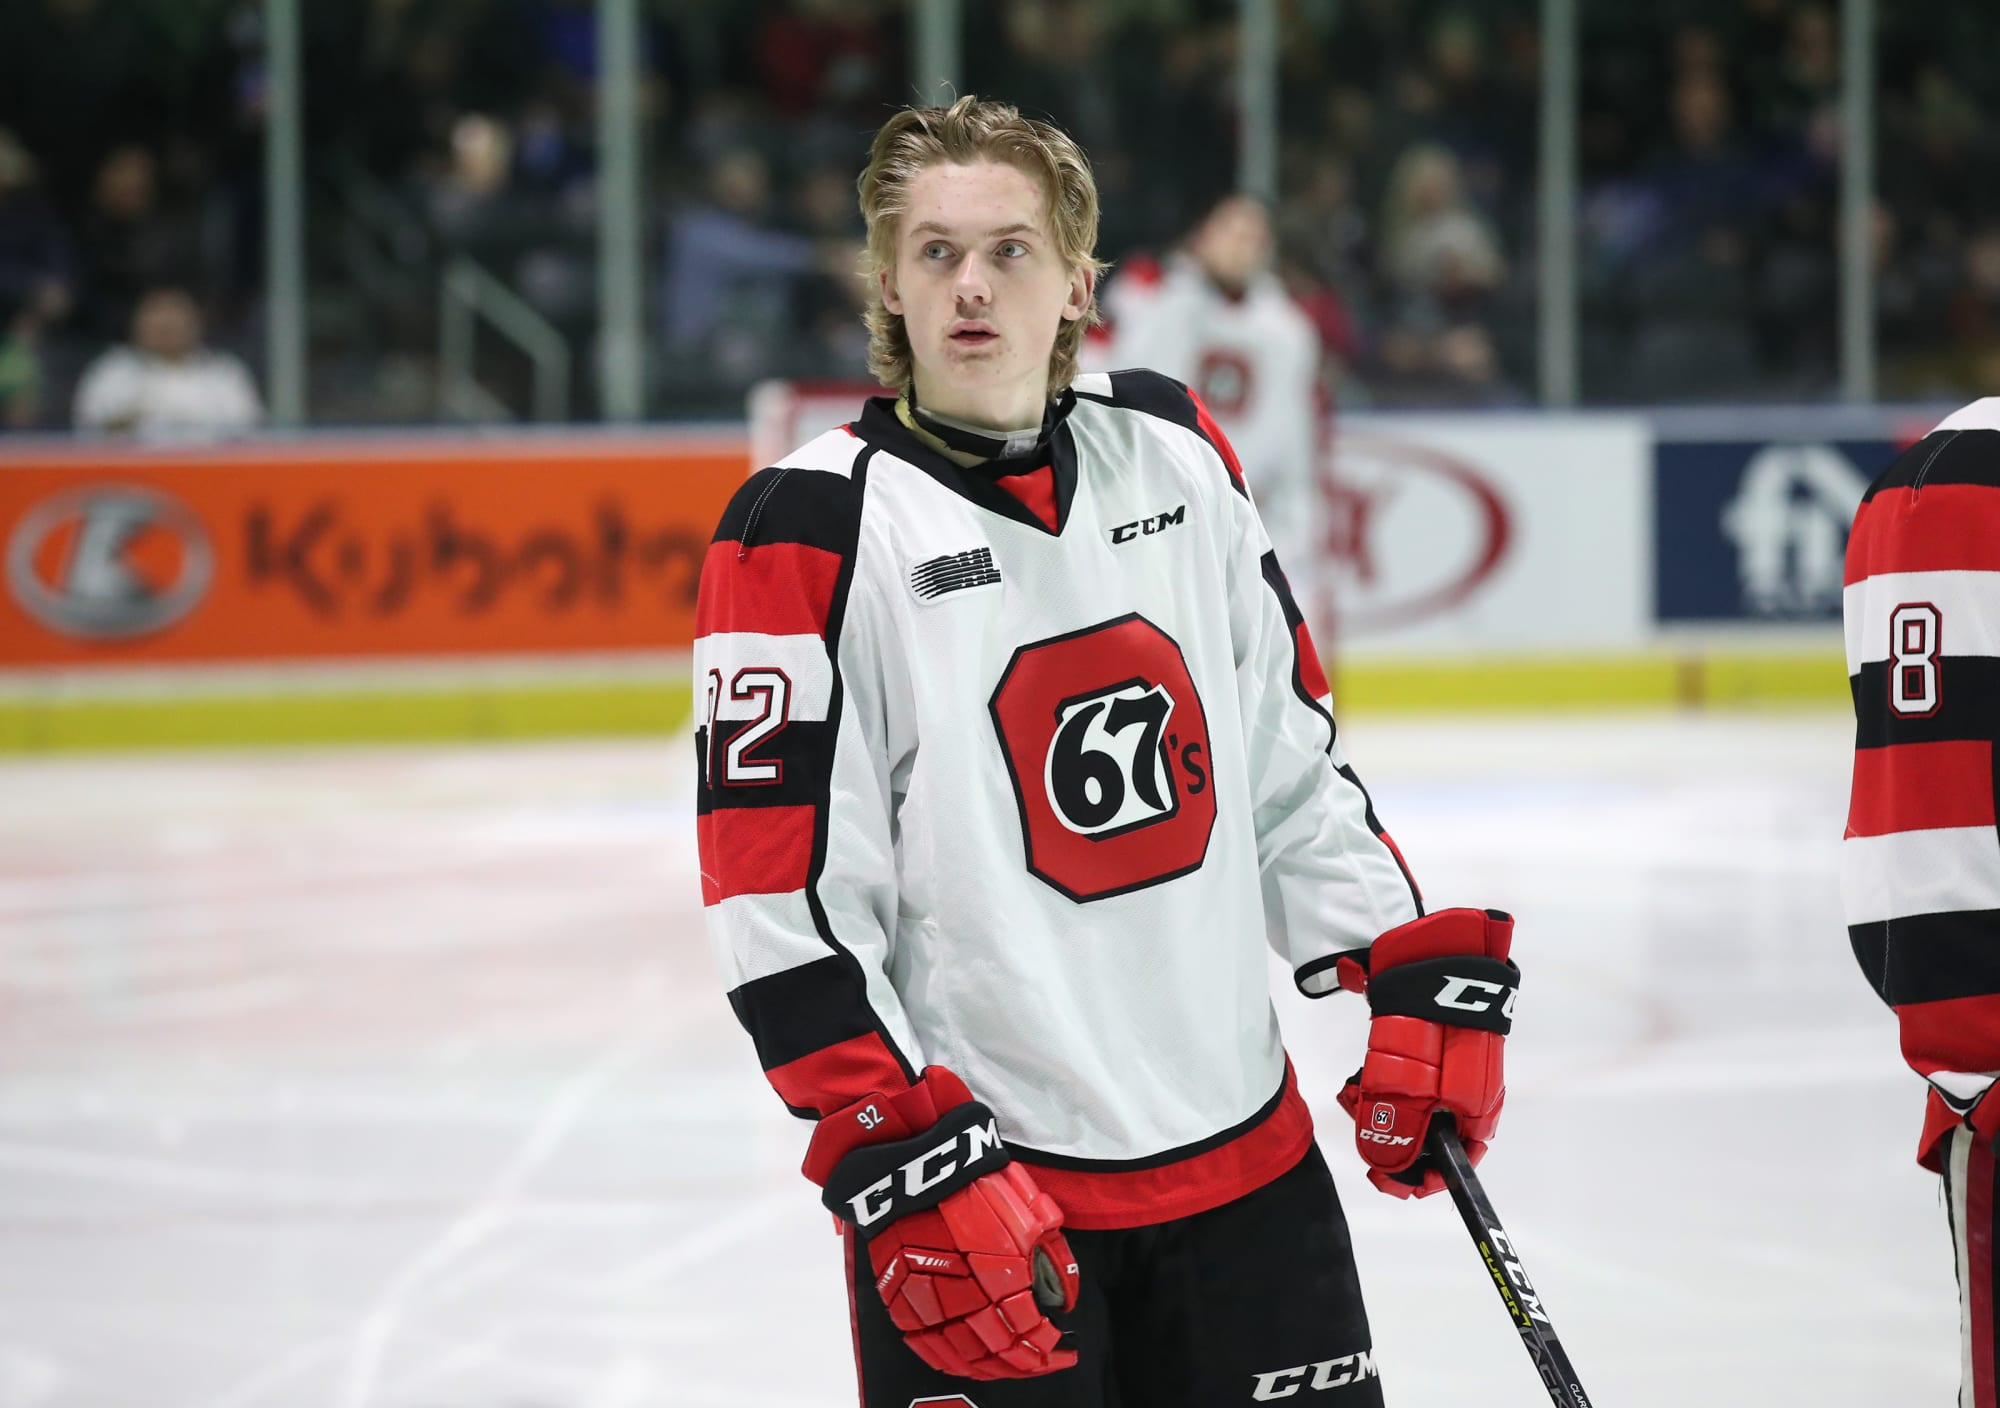 New Jersey Devils Should Consider Options For OHL Prospects After No-Hit Rule